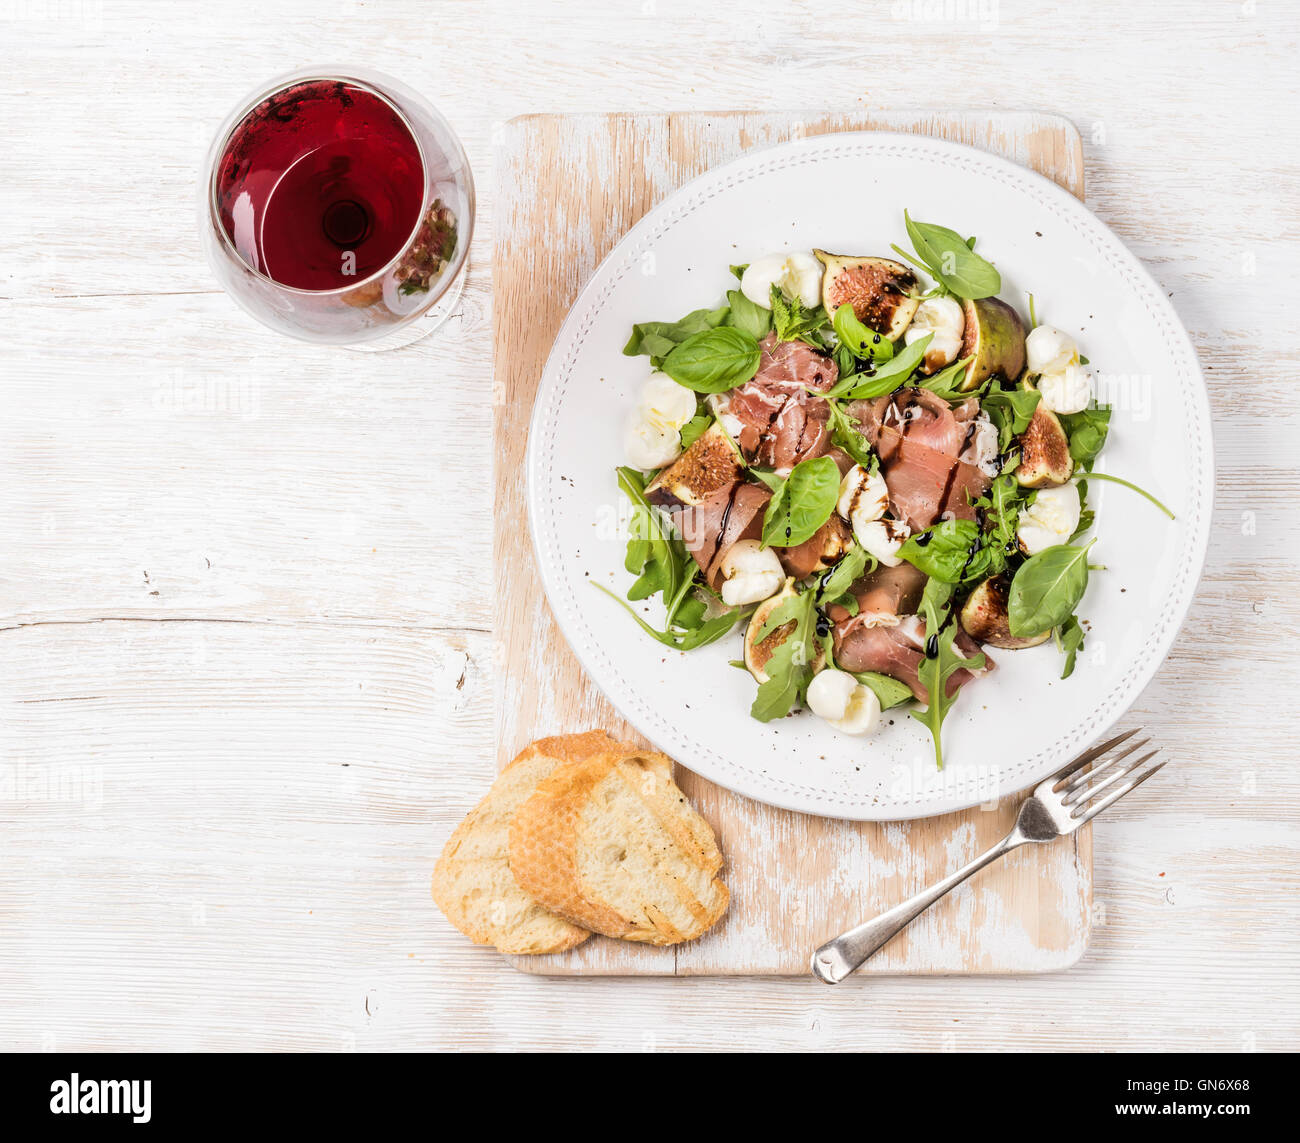 Prosciutto, arugula, figs salad with baguette slices and wine - Stock Image